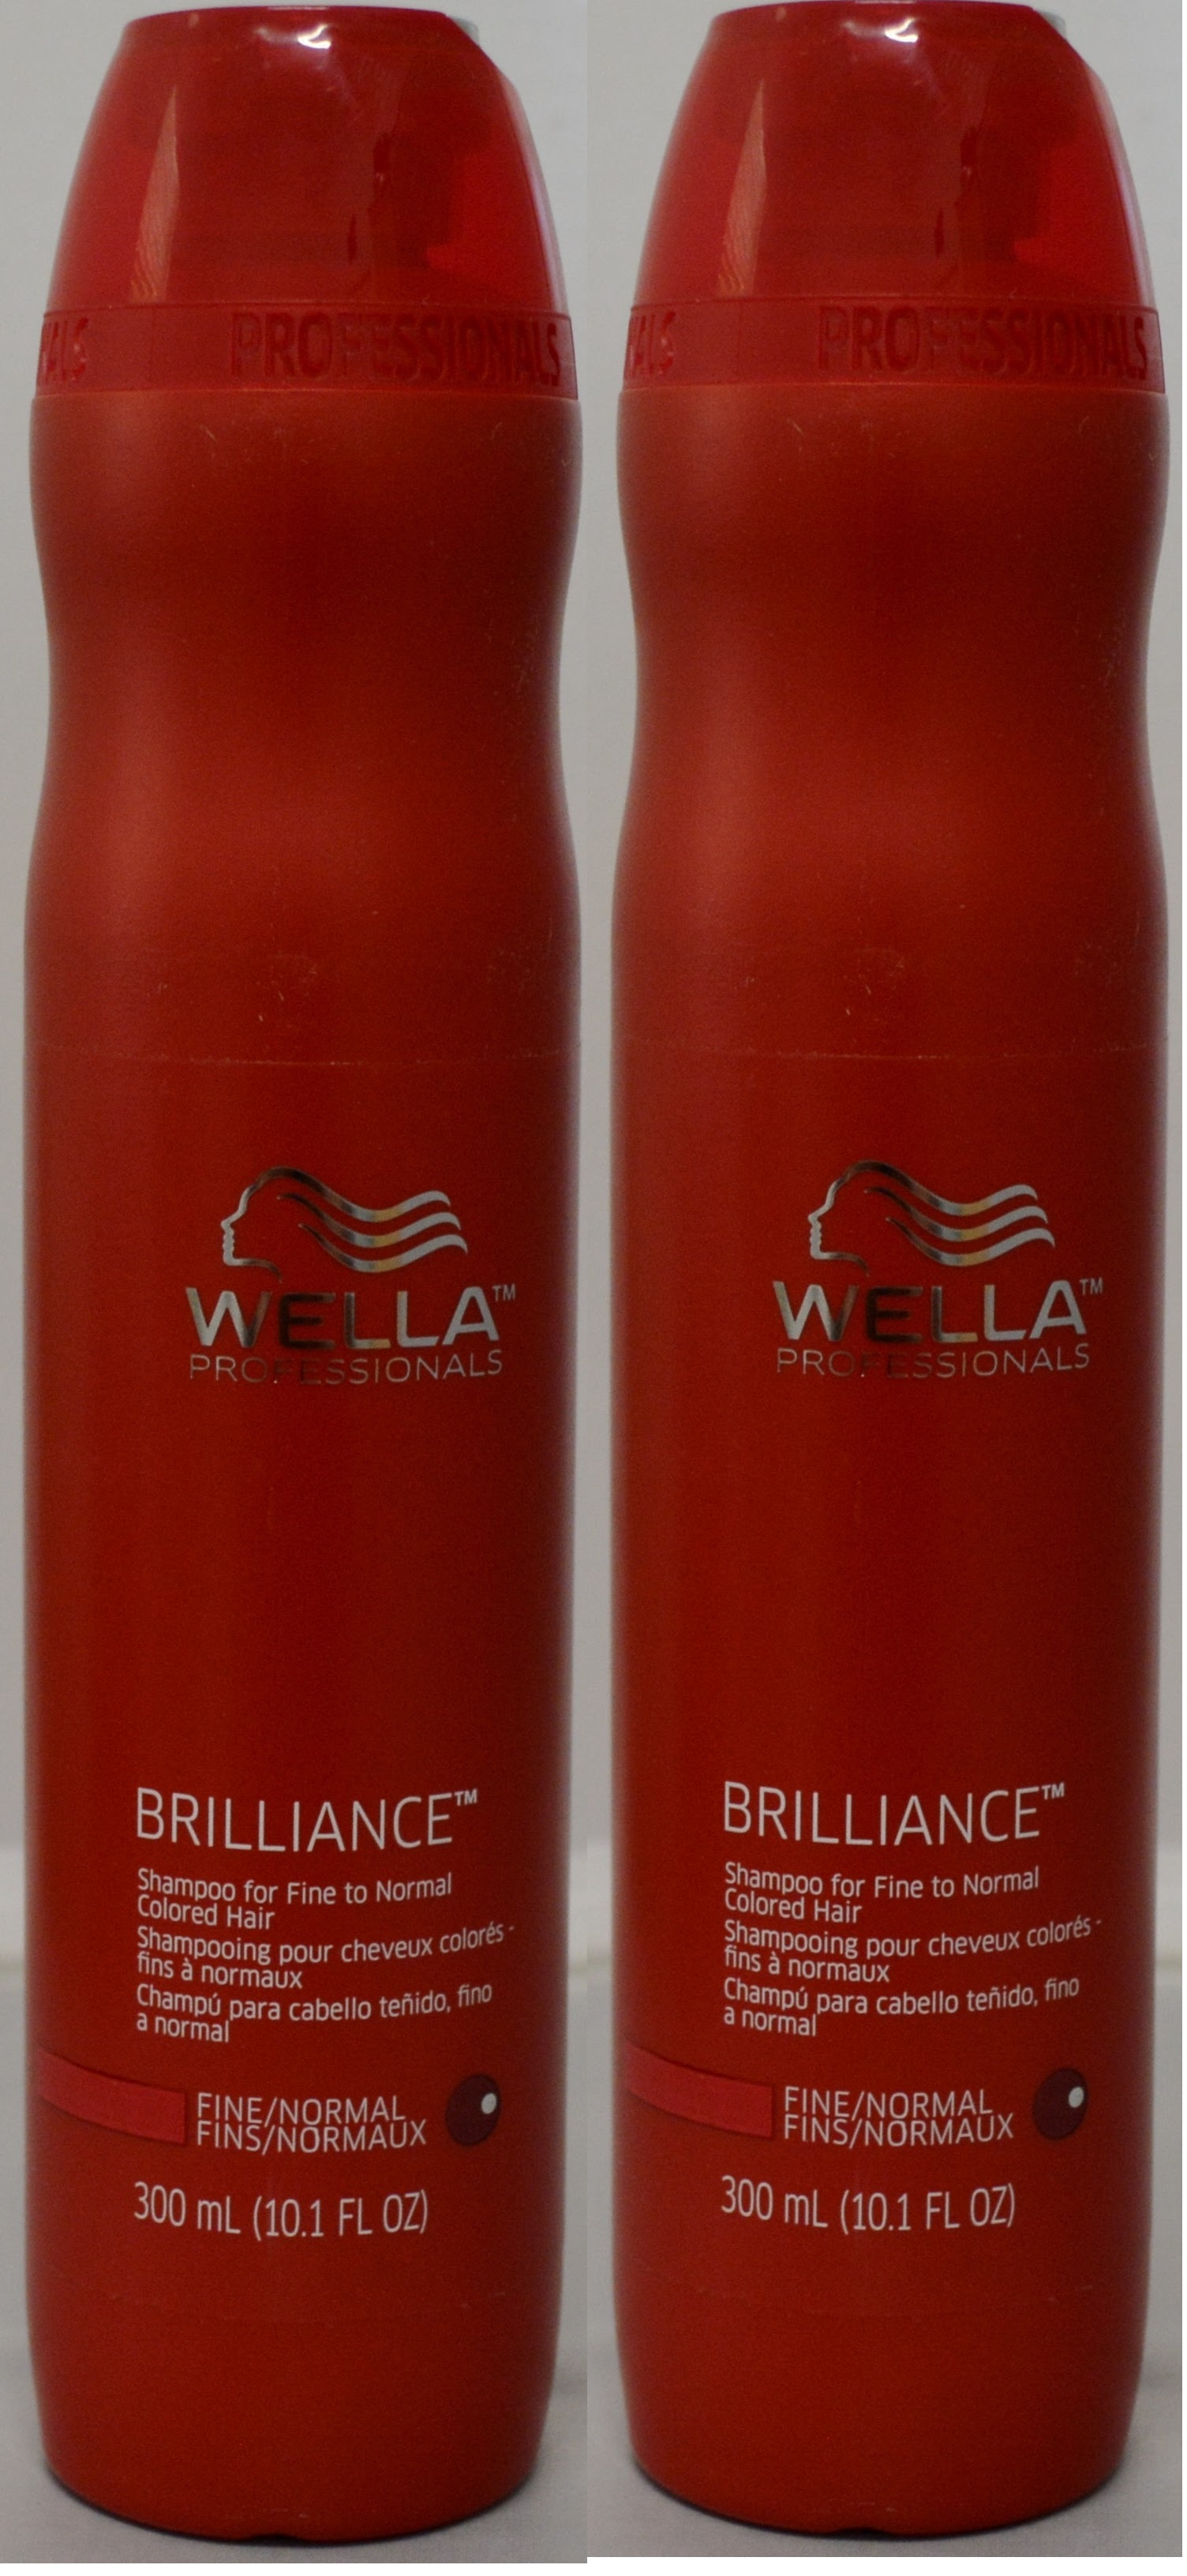 Wella Brilliance Shampoo for Fine to Normal Colored Hair 10.1oz (2 pack)